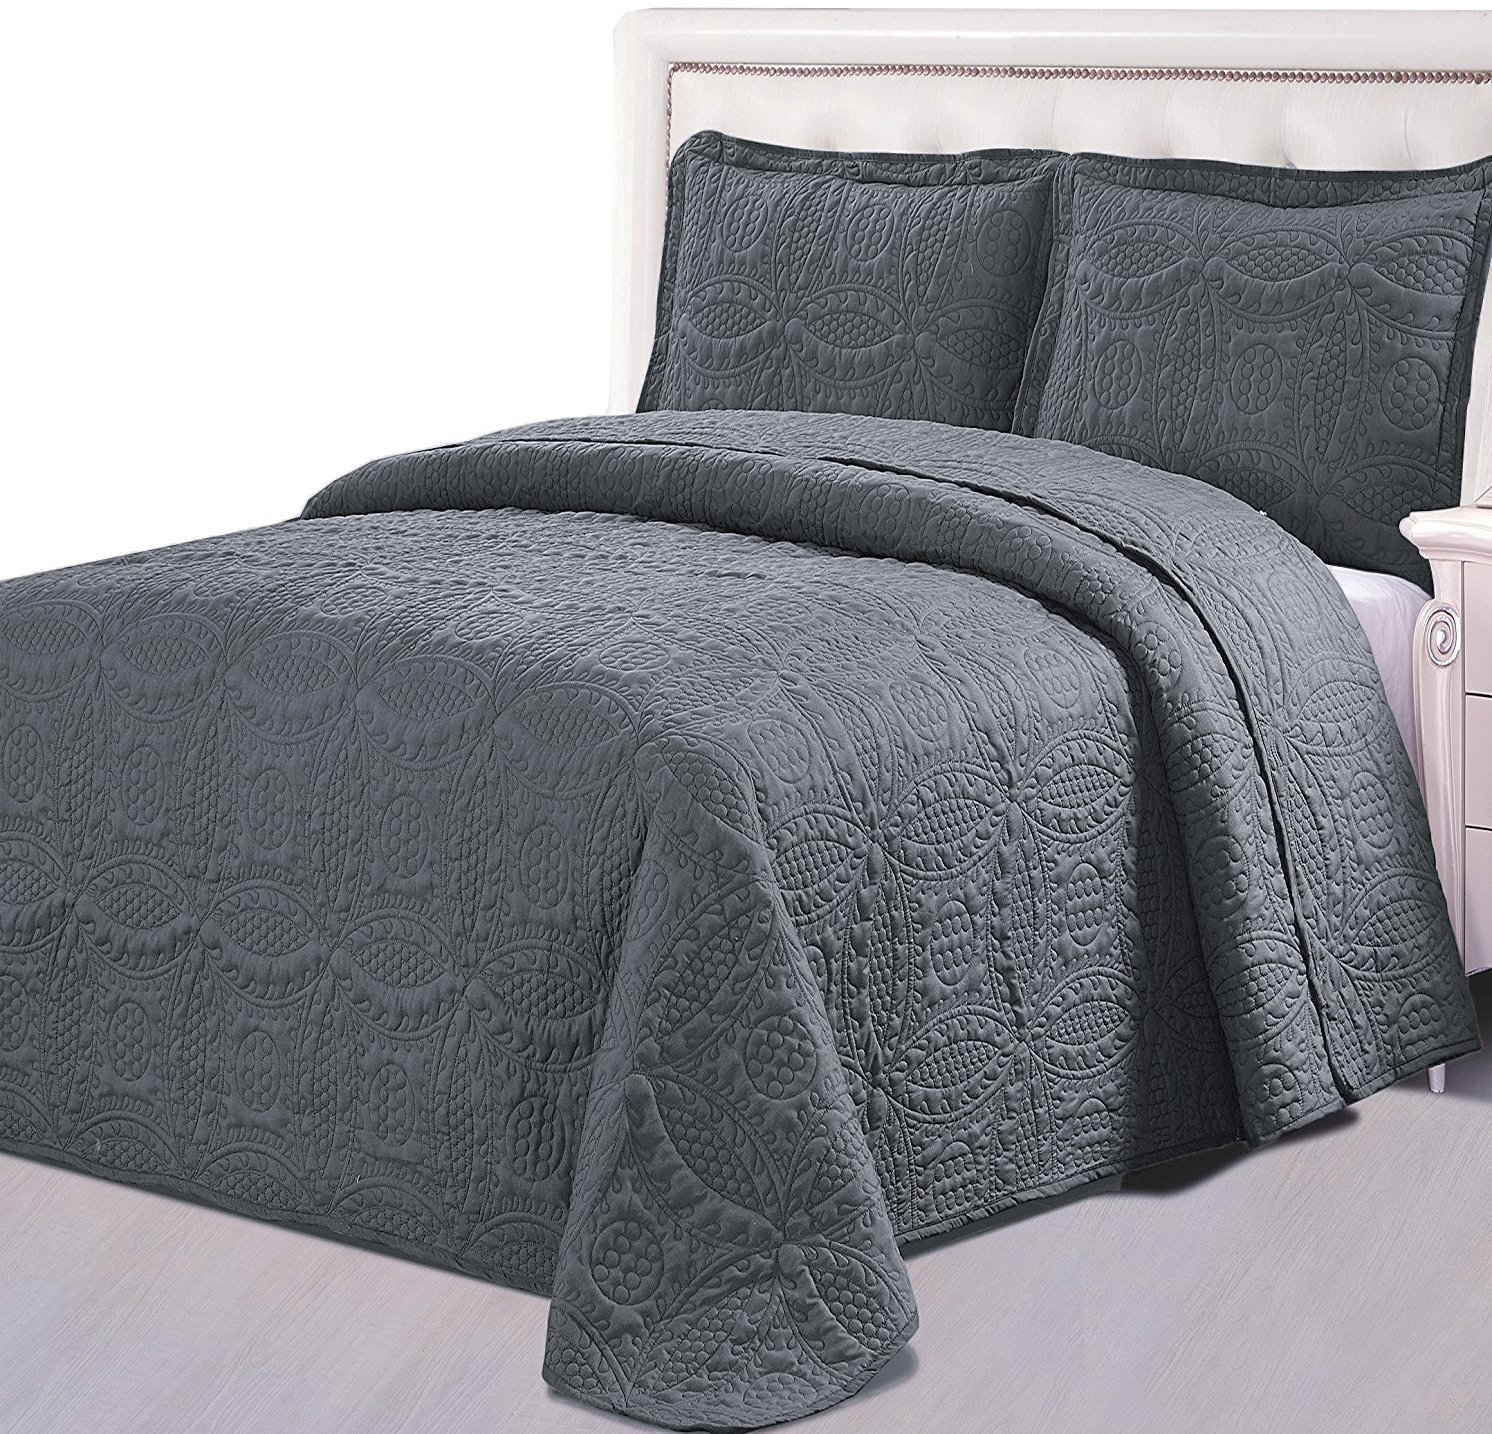 Utopia Bedding 2-Piece Bedspread Set (Queen, Charcoal Grey) - Luxurious Brushed Microfiber Coverlet Set - Quilted Embroidery Bed Cover with Pillow Case - Soft and Comfortable - Machine Washable